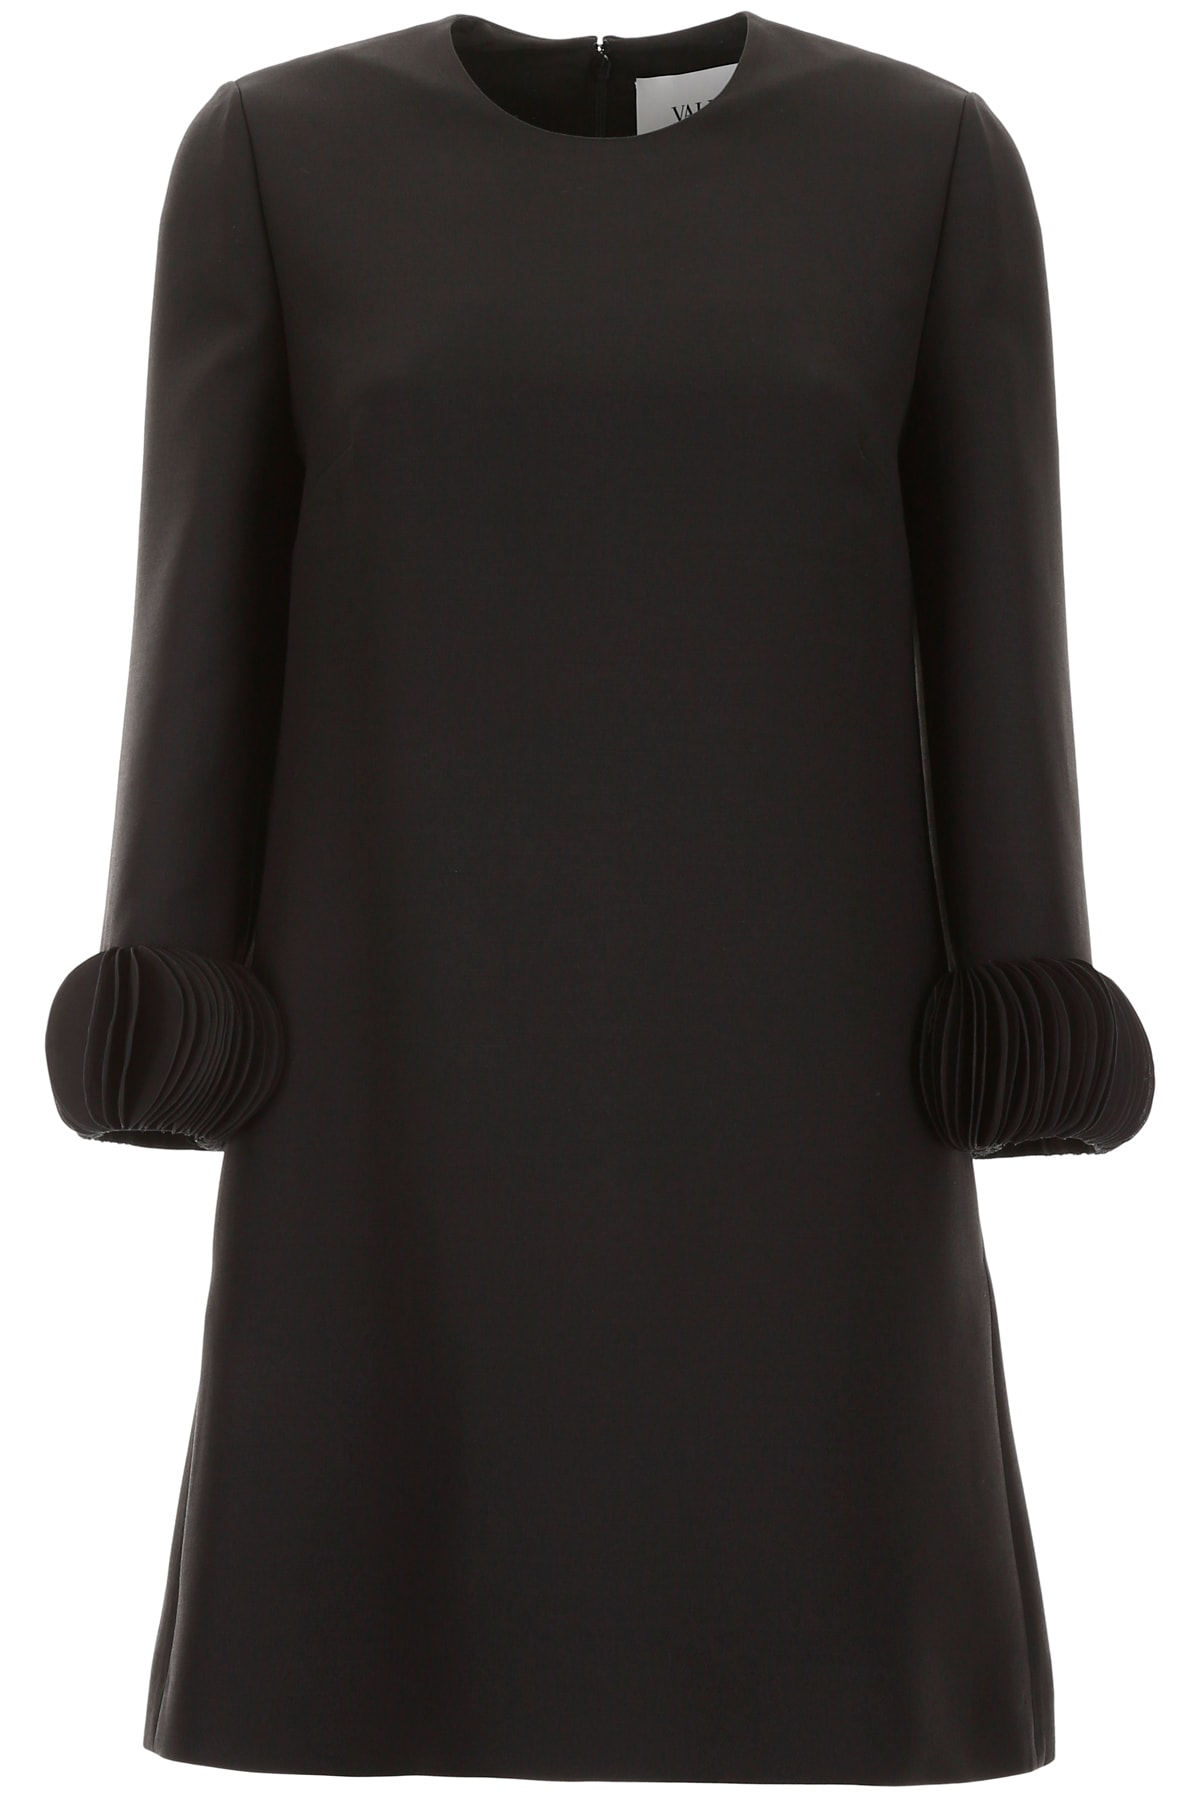 Valentino Mini Dress With Pages Embroidery